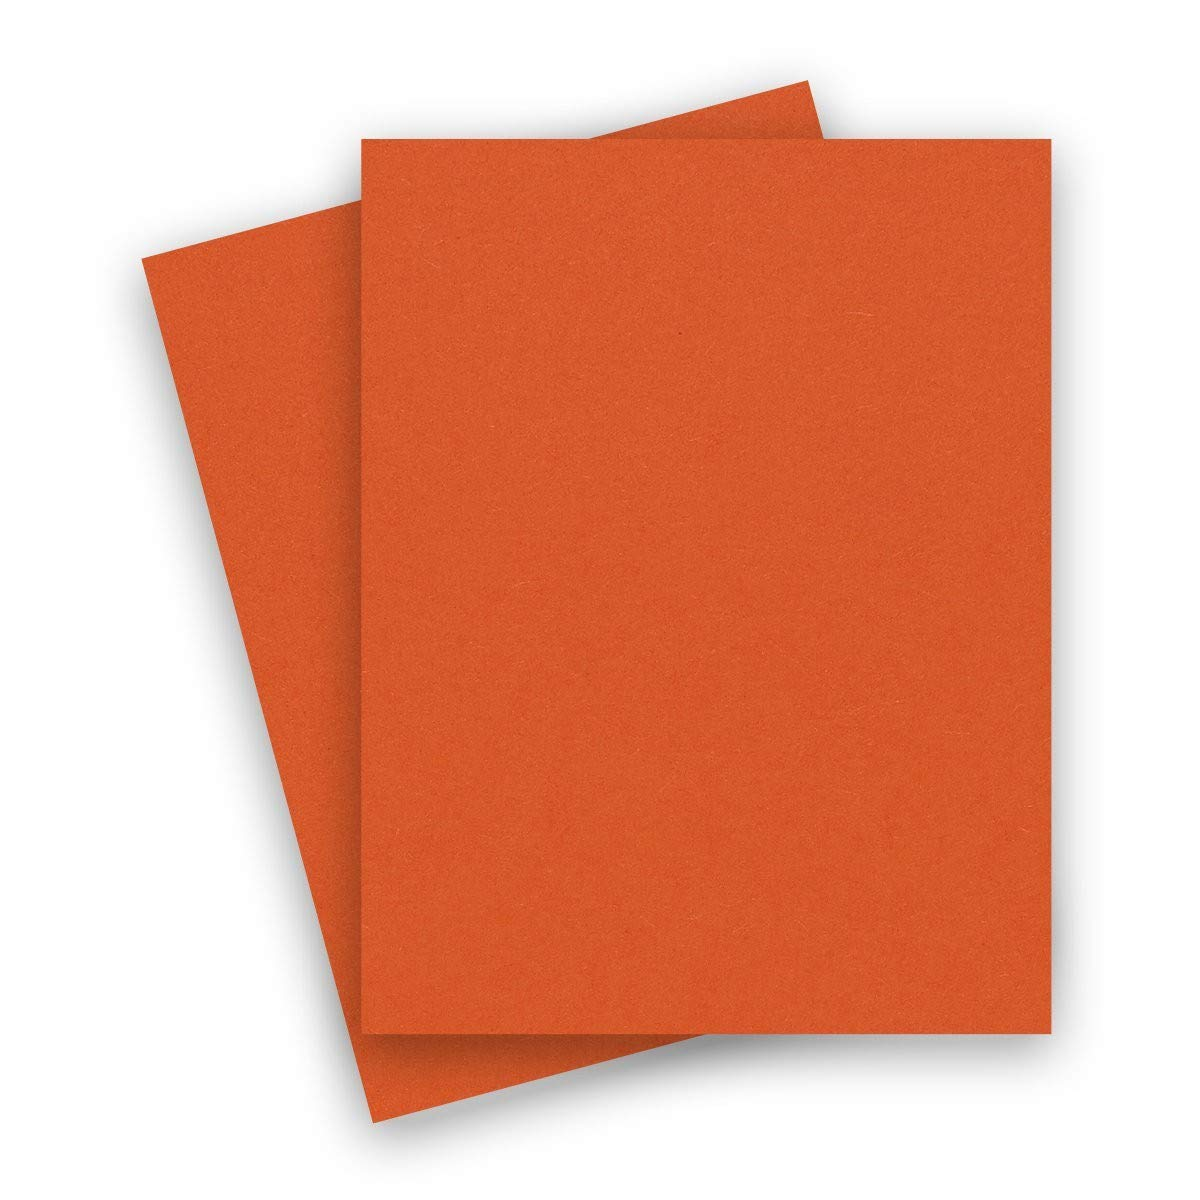 Extract Ember 8-1/2-x-11 Cardstock Paper 250-pk - PaperPapers 380 GSM (140lb Cover) Quality Card Stock Papers Sustainable and Earth-Friendly Paper - Great for Professional and DIY Crafting Projects